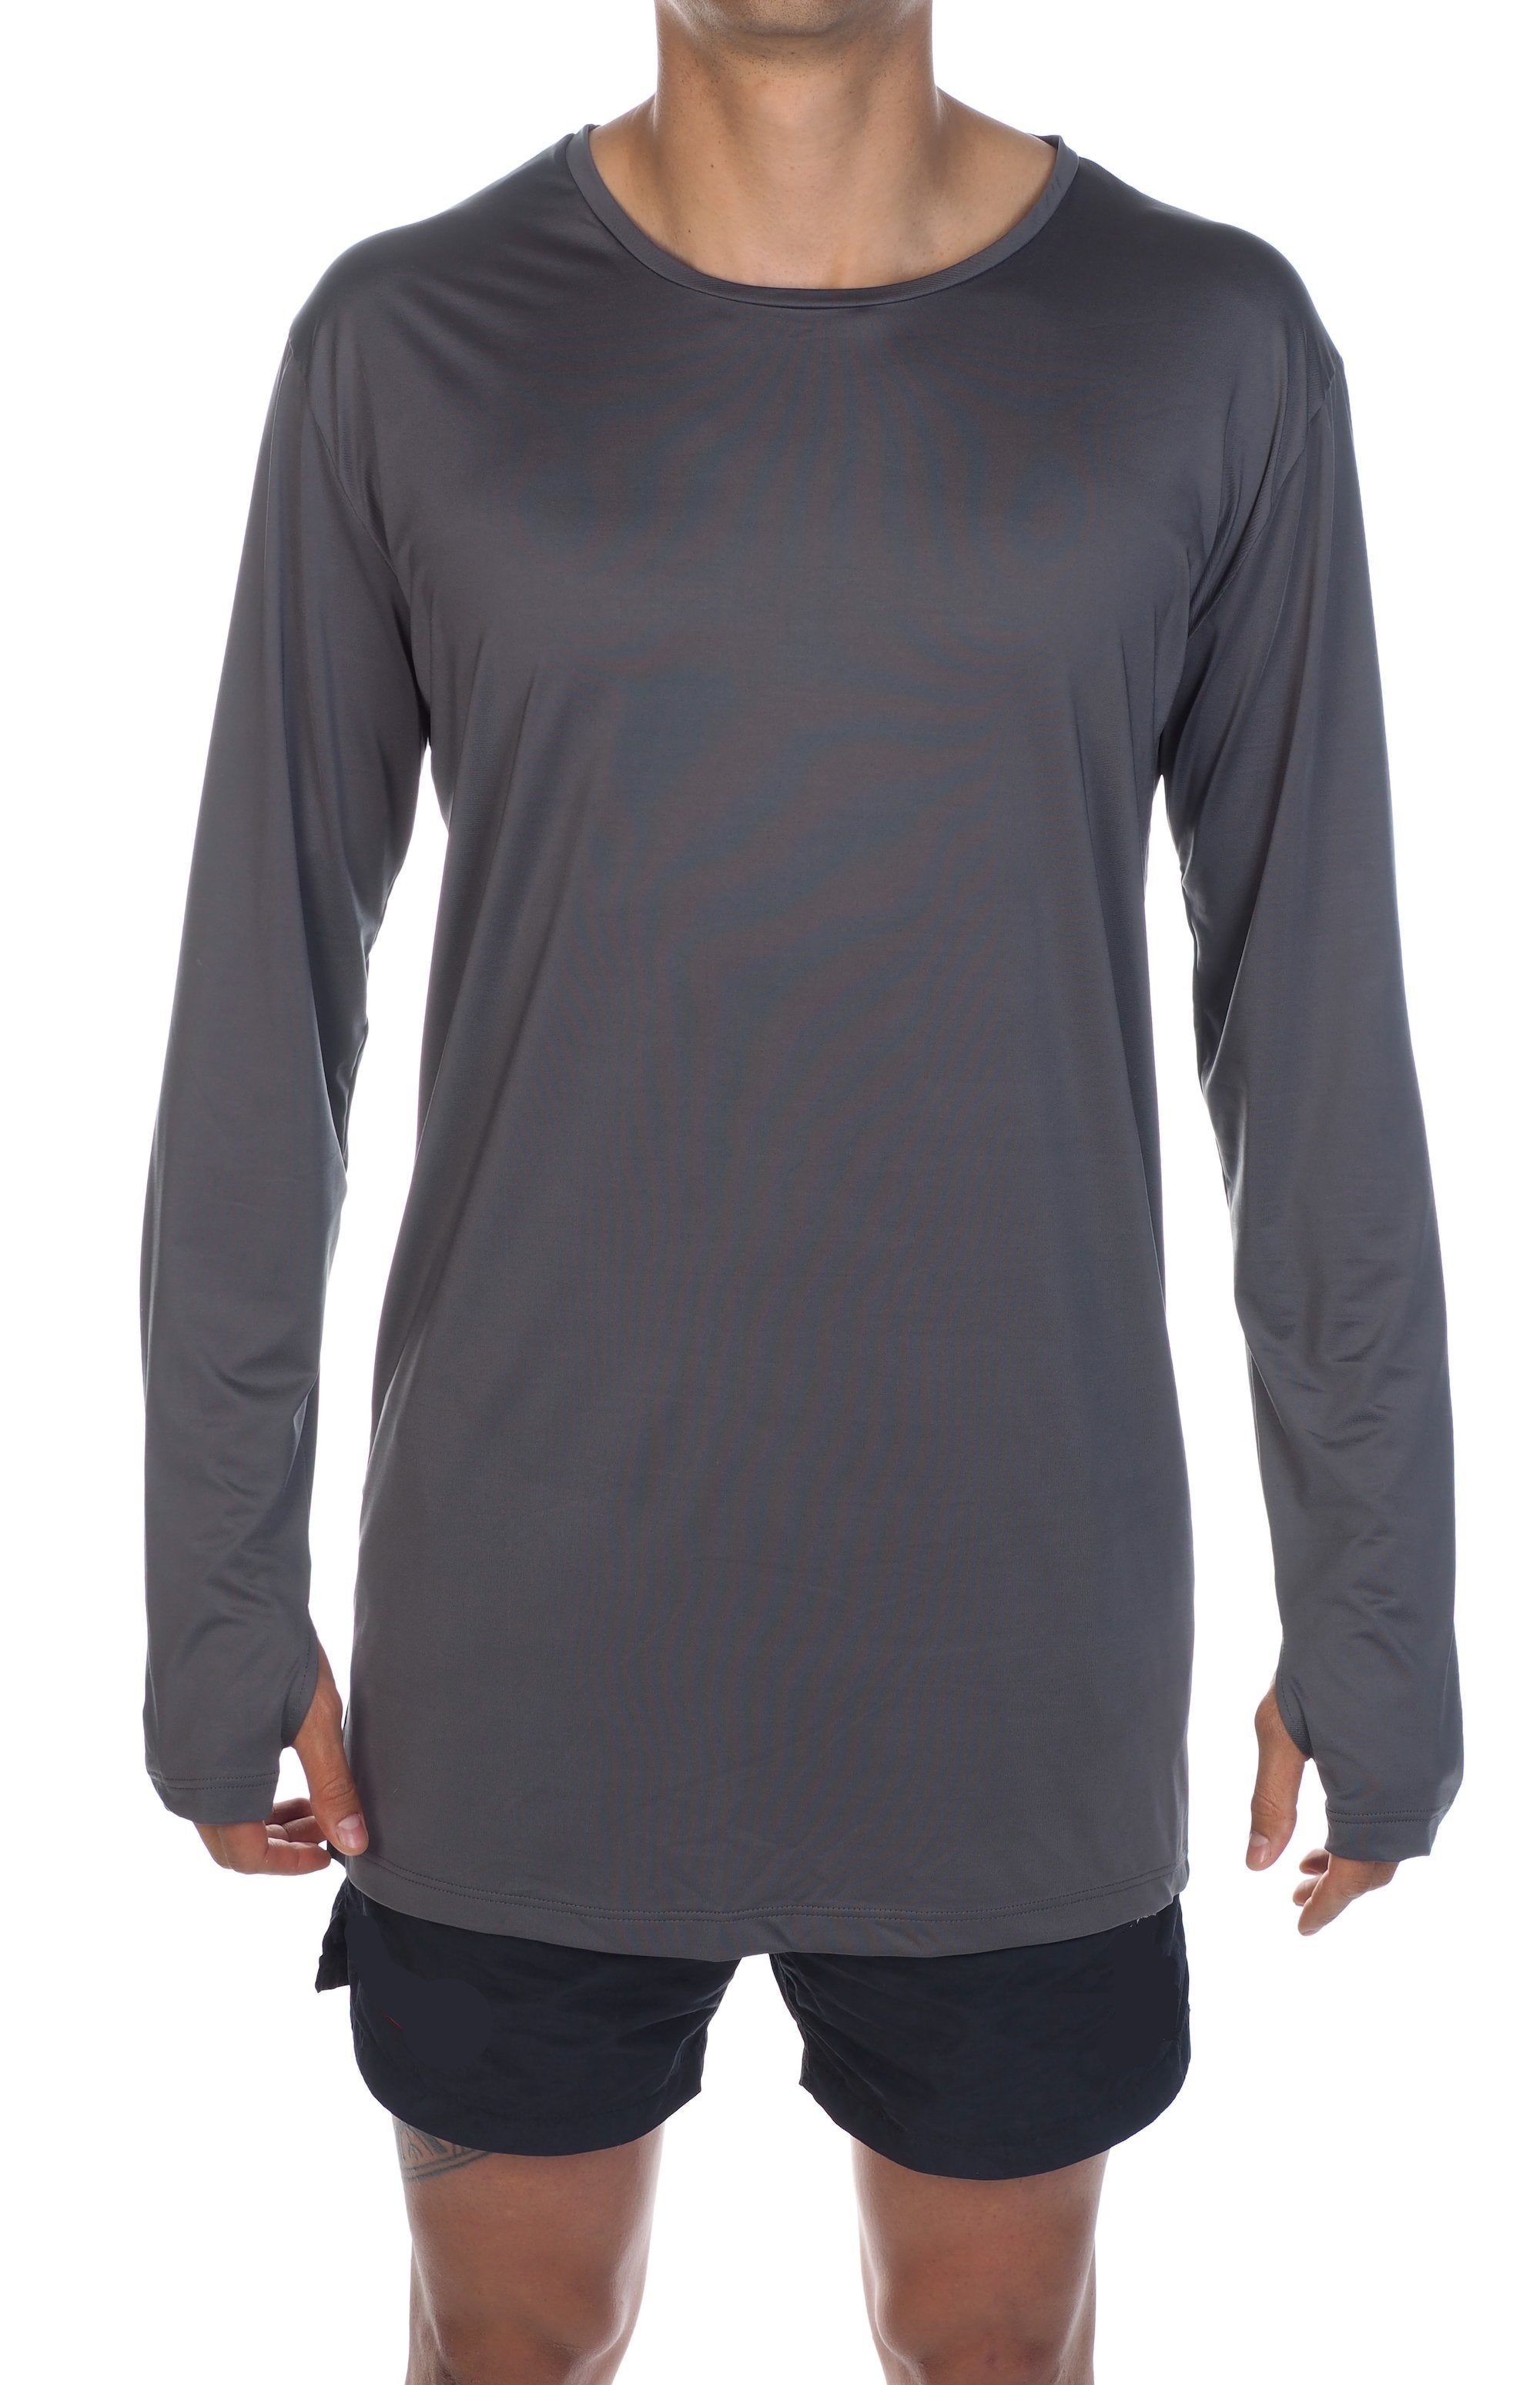 Active Wear Top - Charcoal Sports